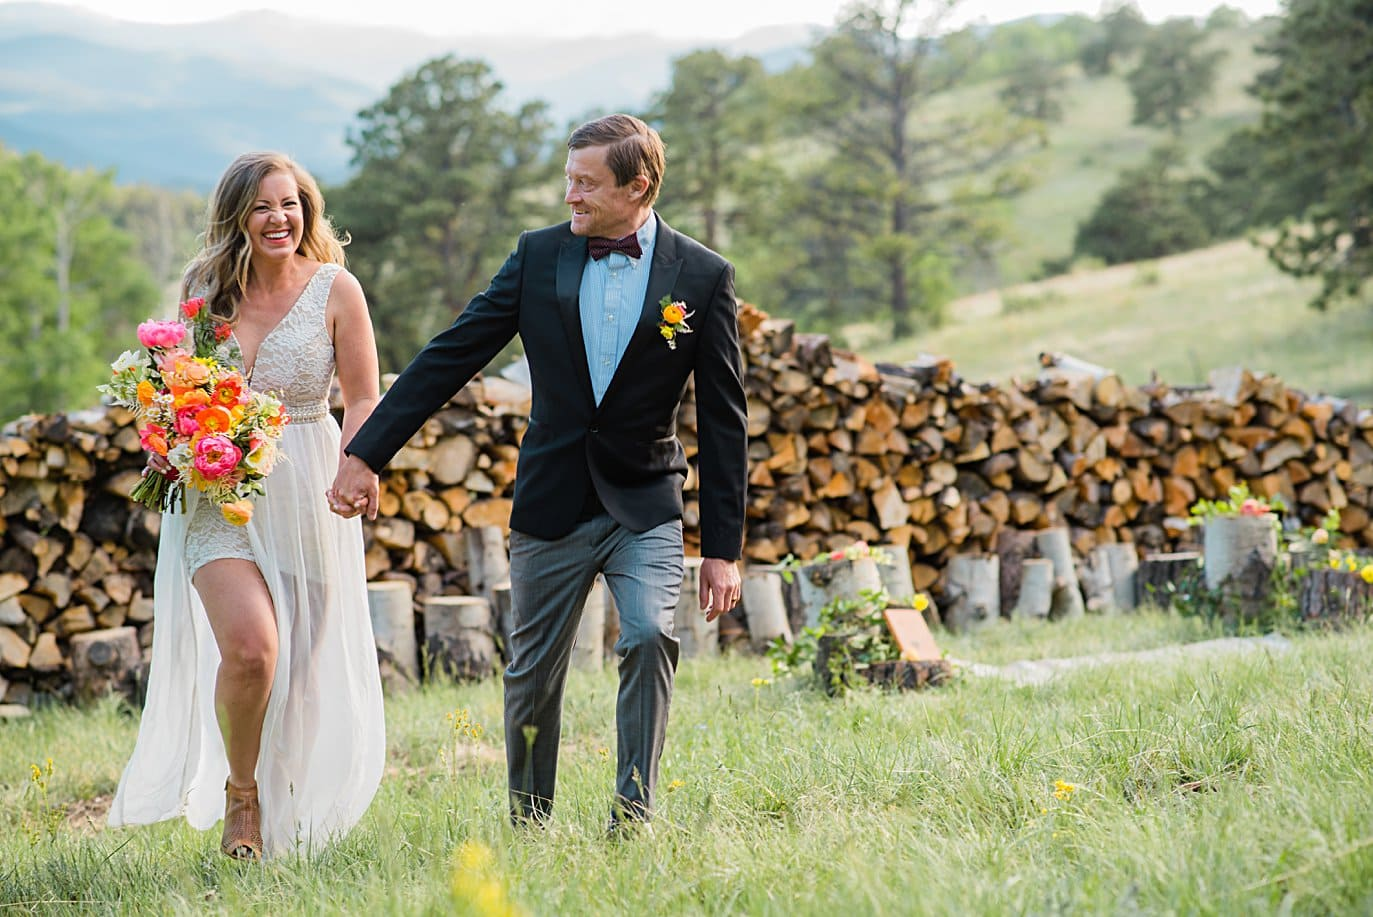 bride and groom walk hand in hand from outdoor ceremony at private Golden elopement by Boulder elopement photographer Jennie Crate